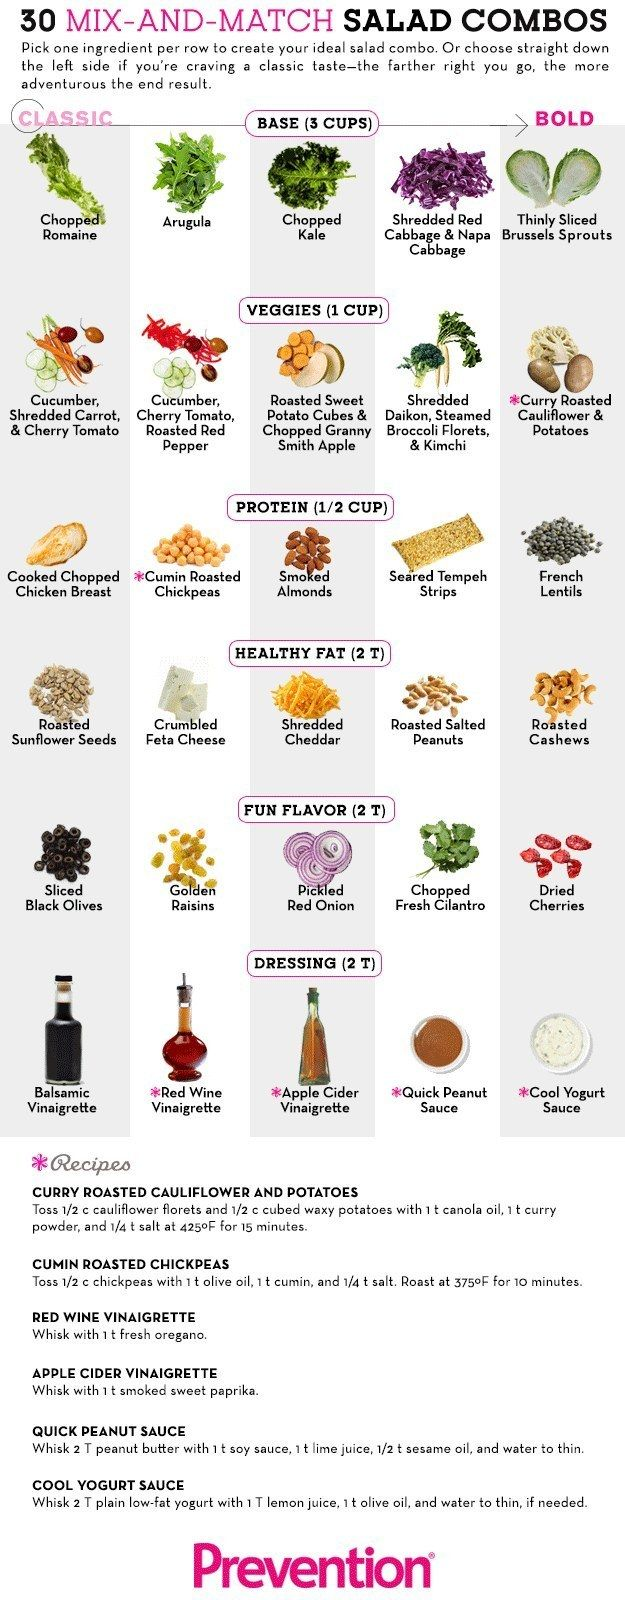 For when you're tired of eating the same old salad. | 24 Diagrams To Help You Eat Healthier